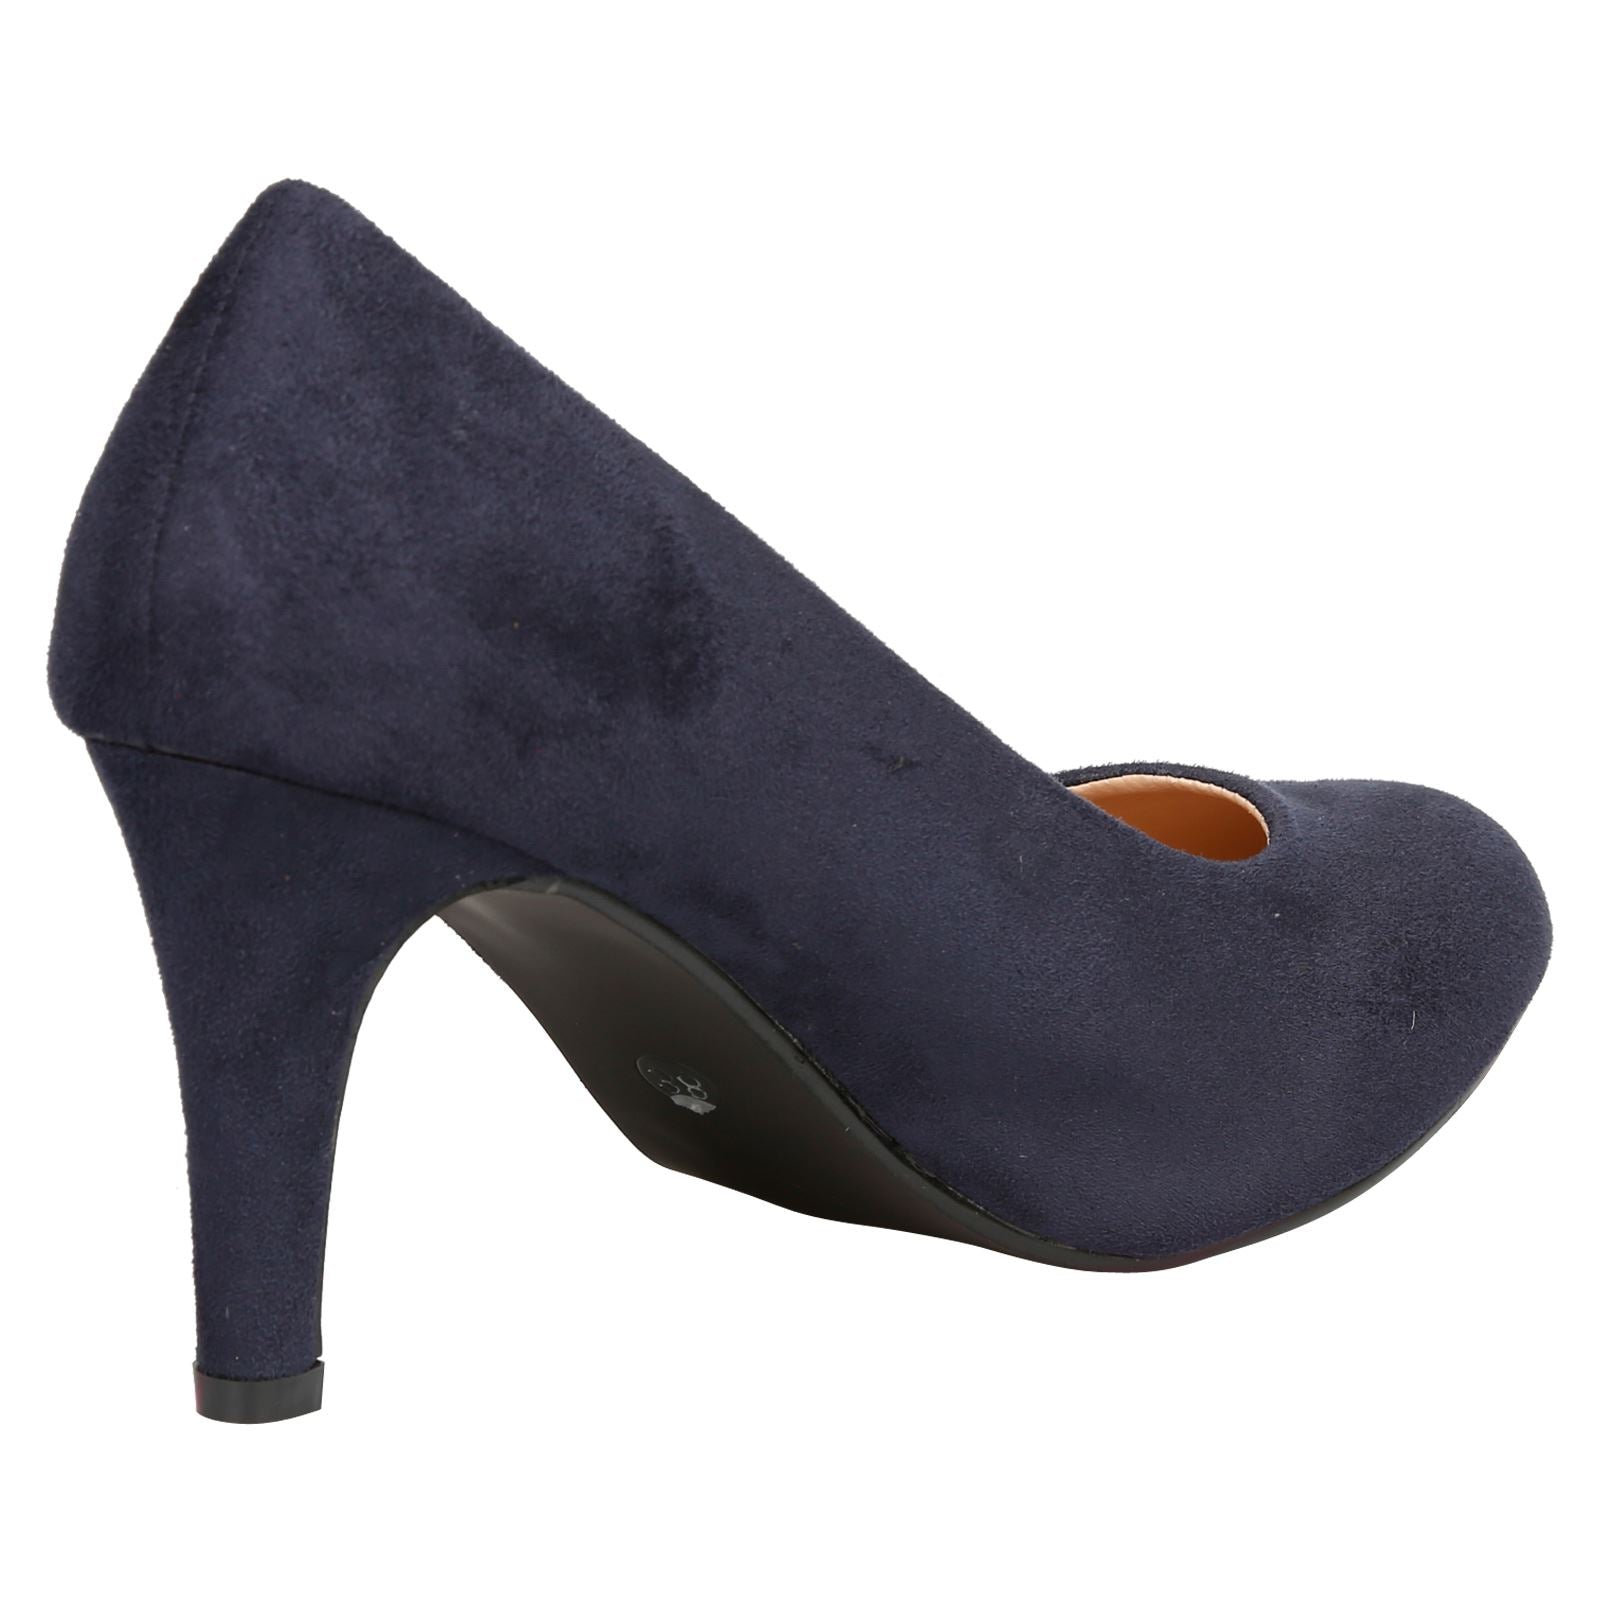 Amiya Slim Heeled Shoes in Dark Blue Faux Suede